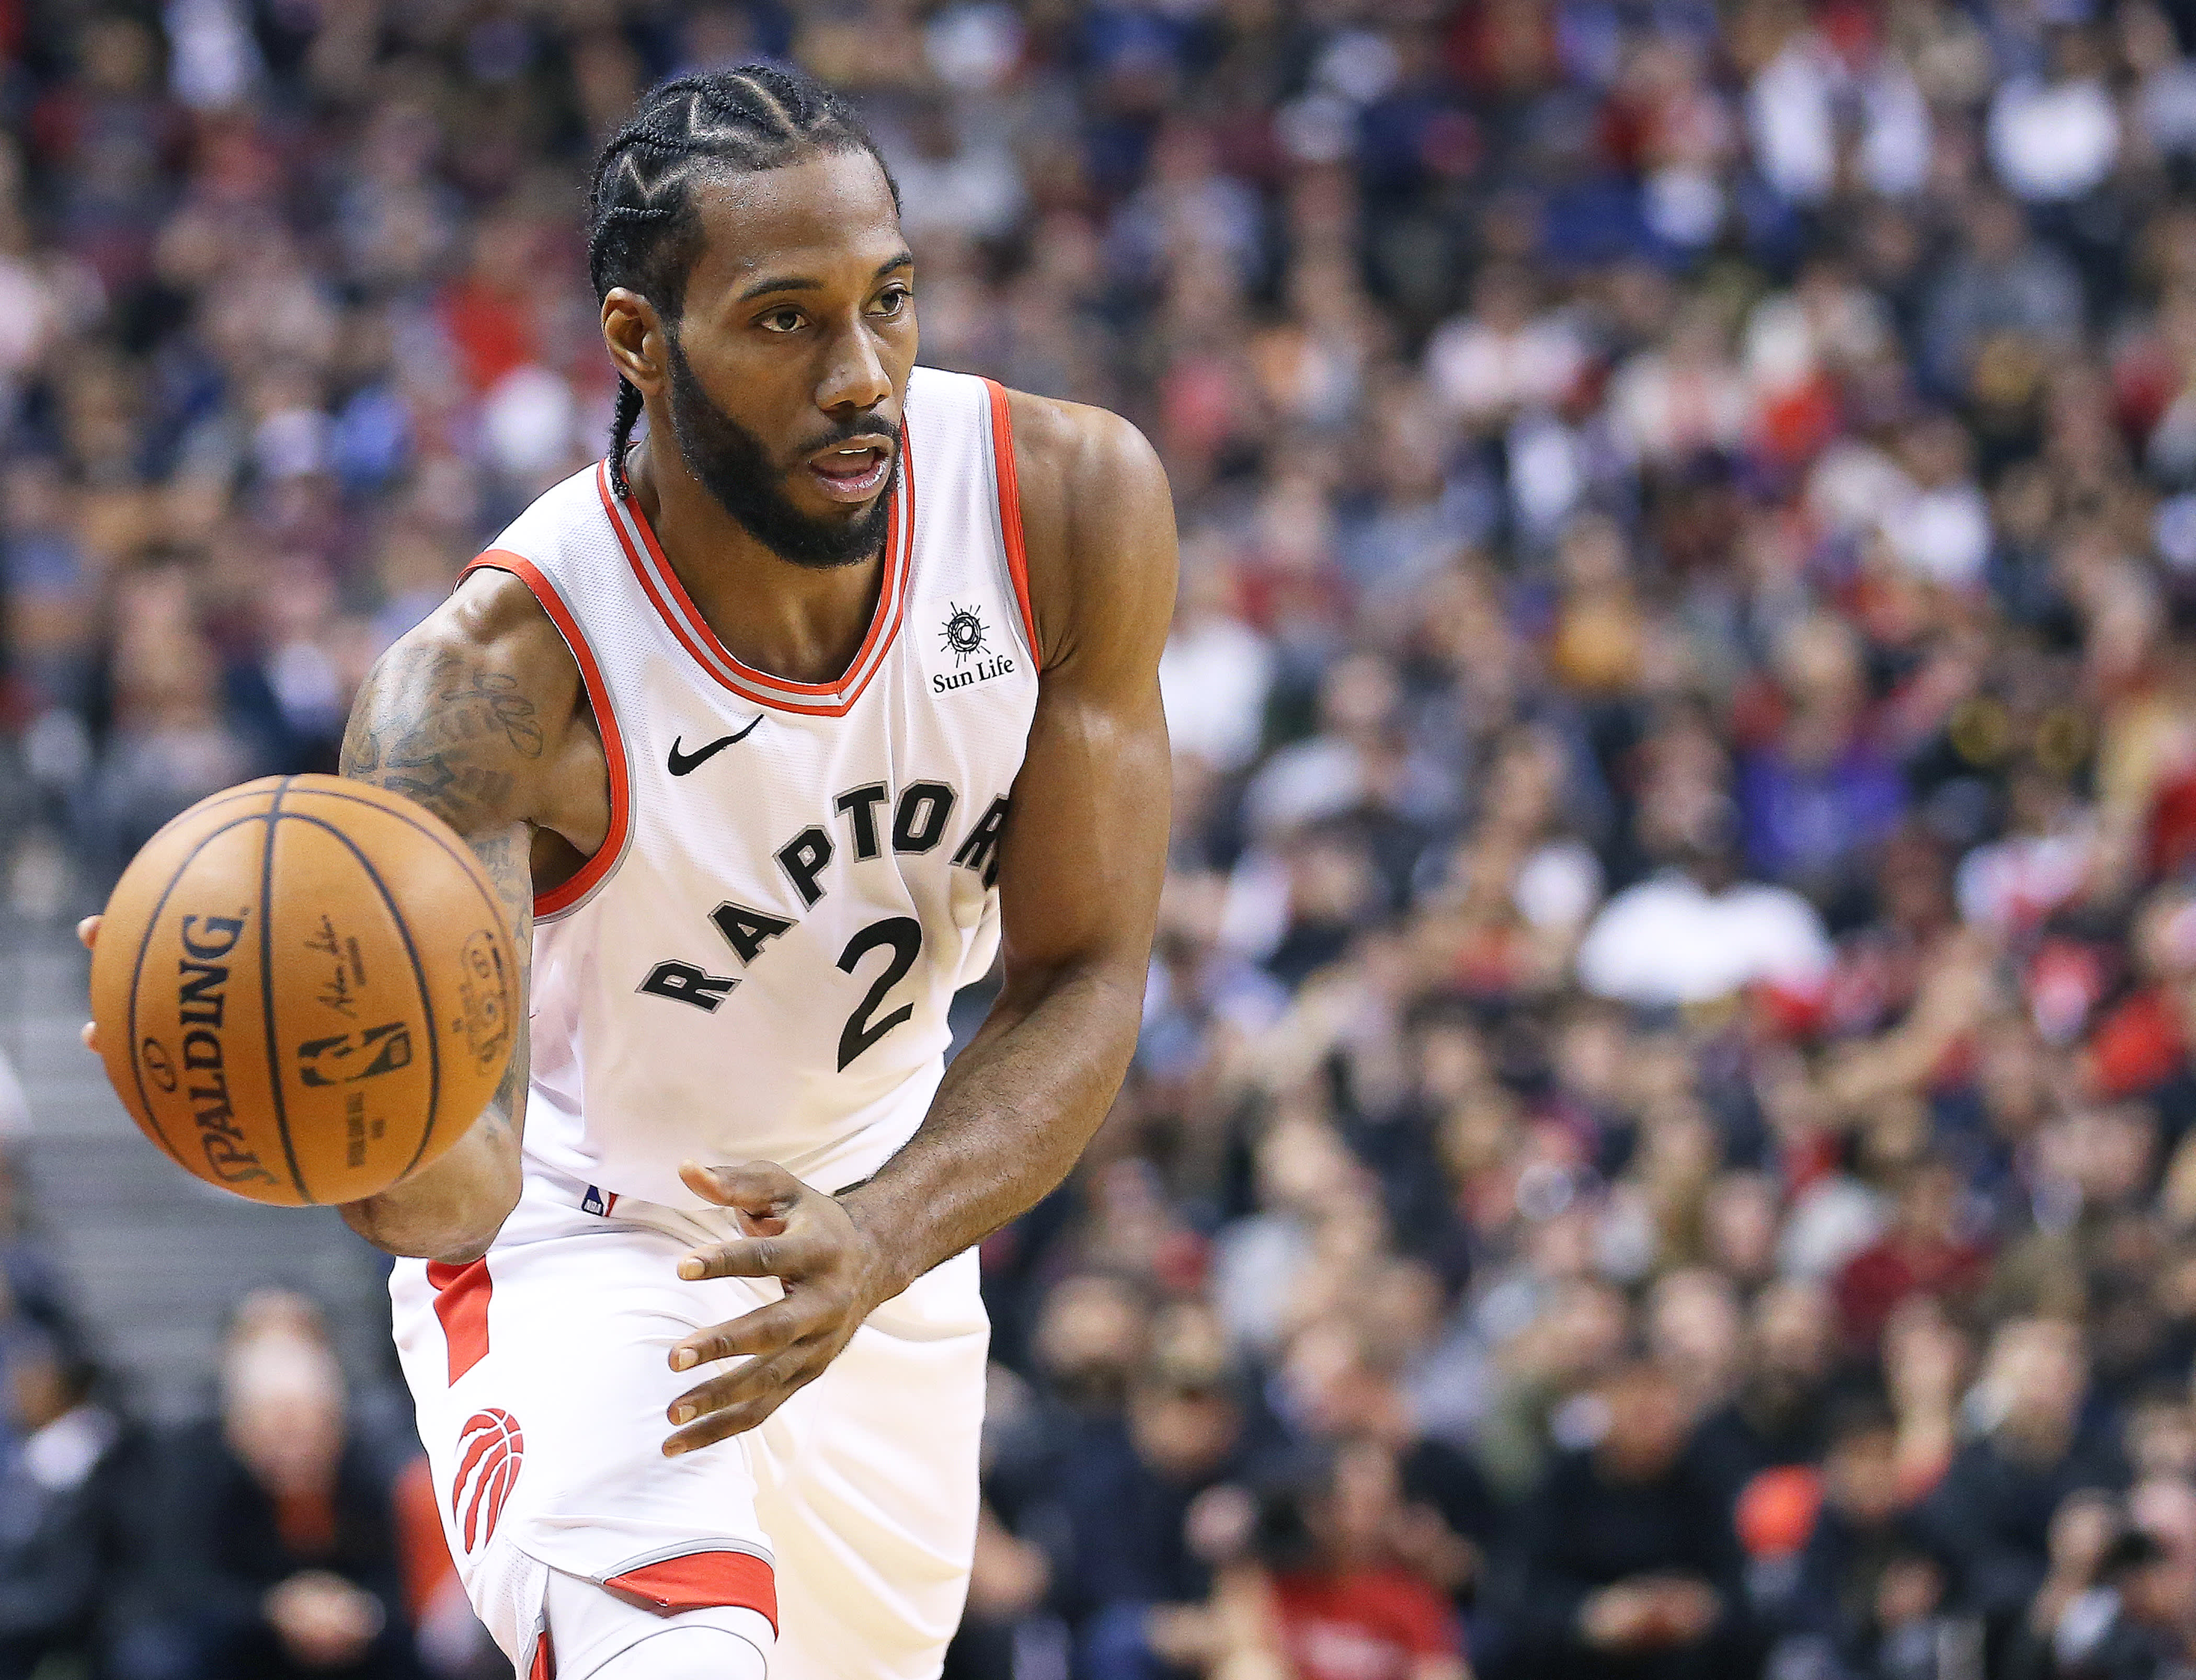 NBA stars Kawhi Leonard and Paul George are joining the LA Clippers